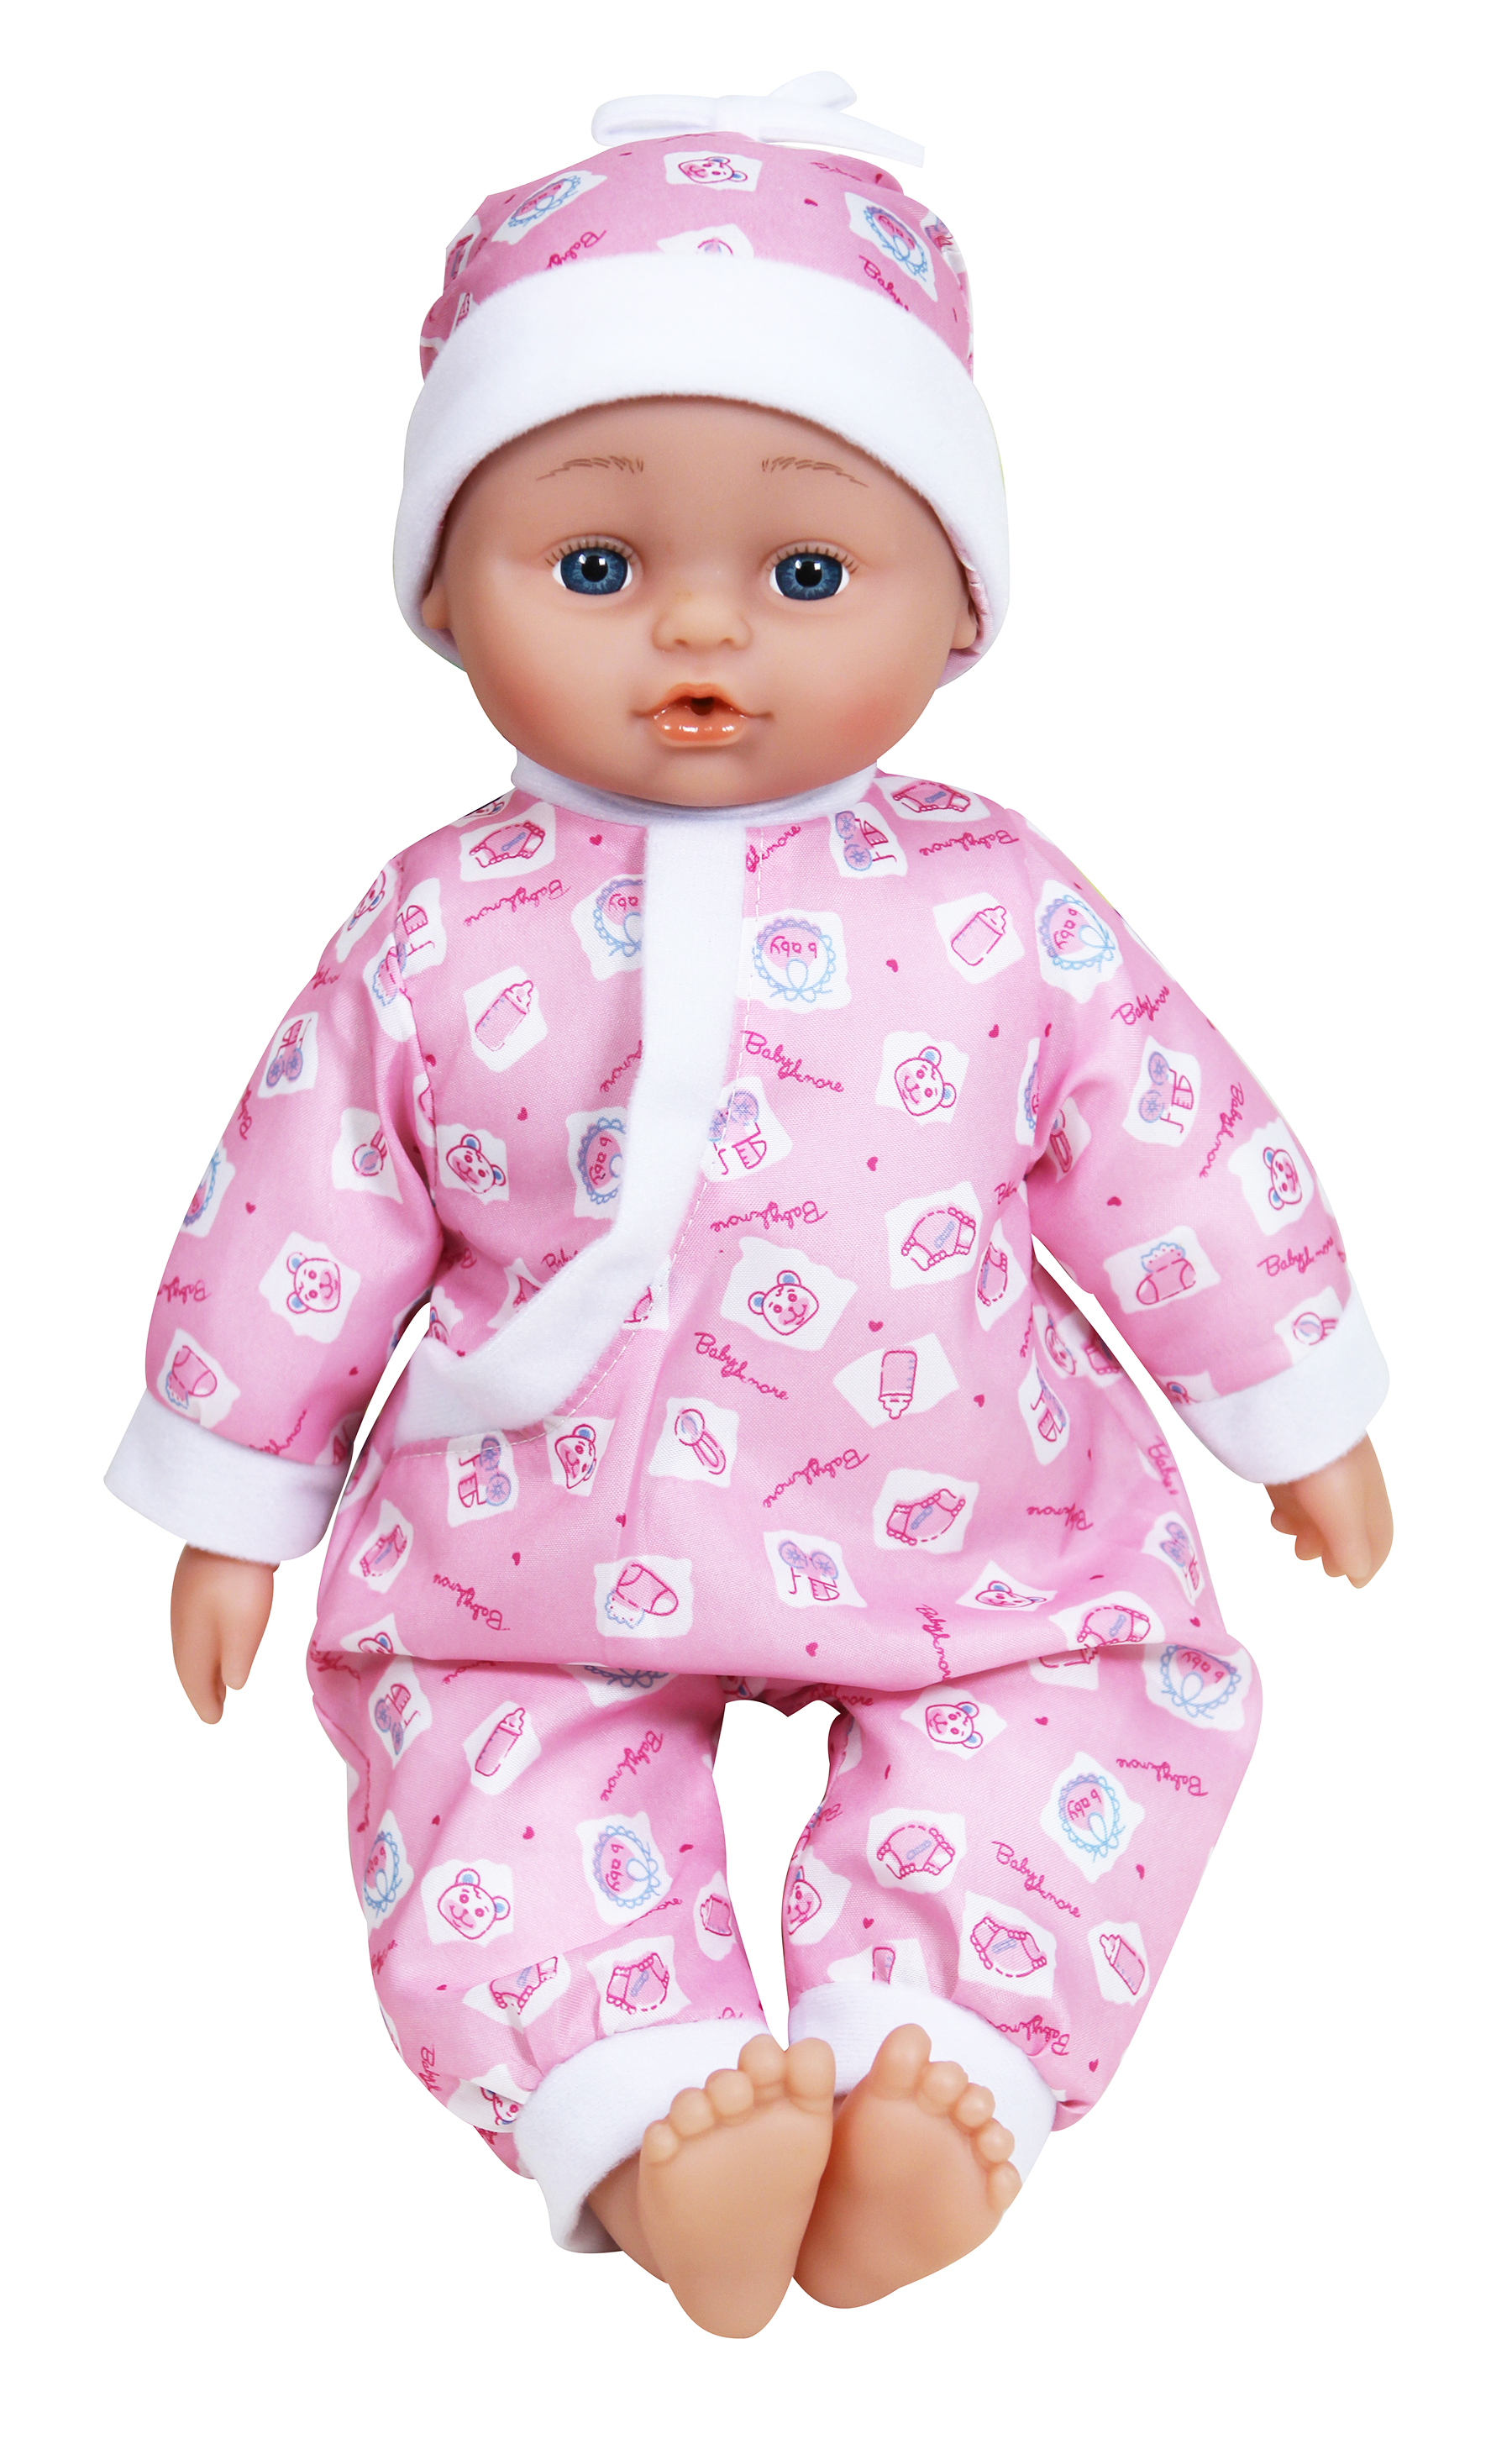 Lissi Dolls 16 Baby Doll With Sound